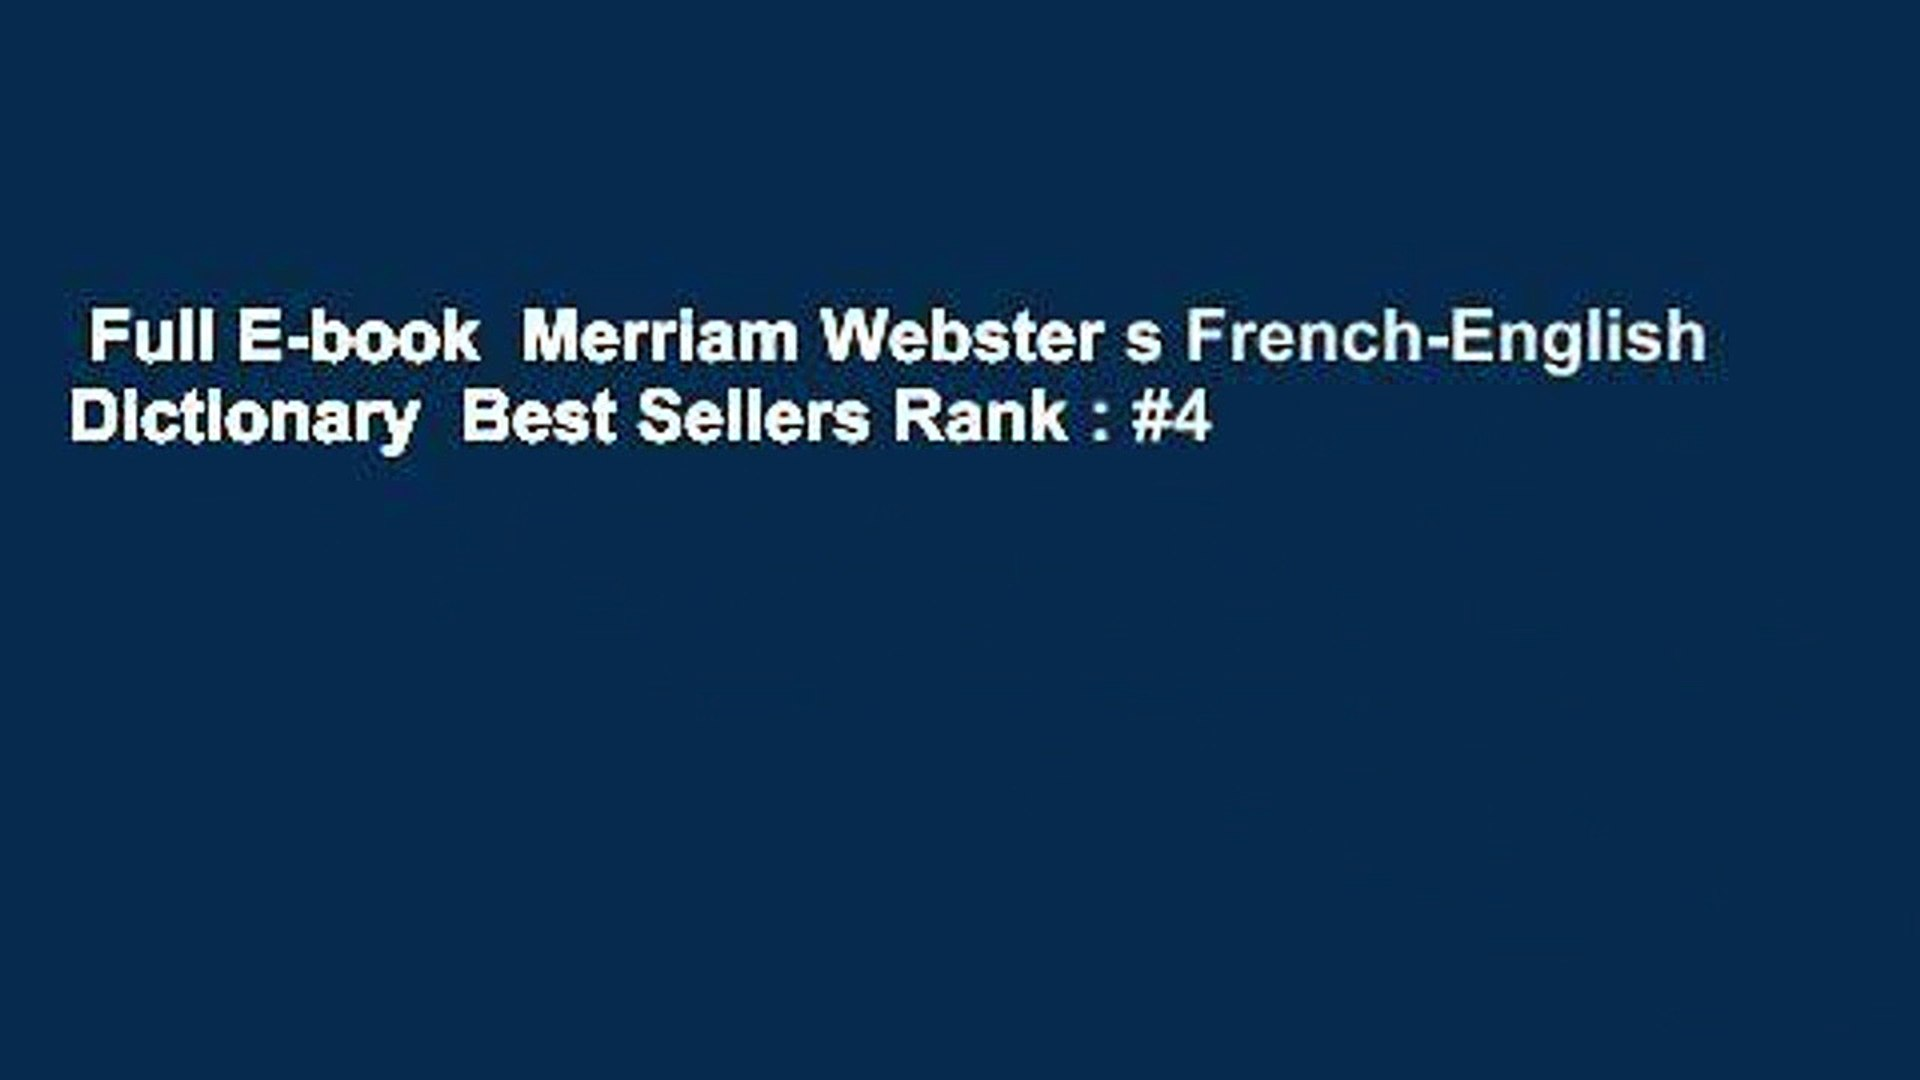 Full E-book Merriam Webster s French-English Dictionary Best Sellers Rank :  #4